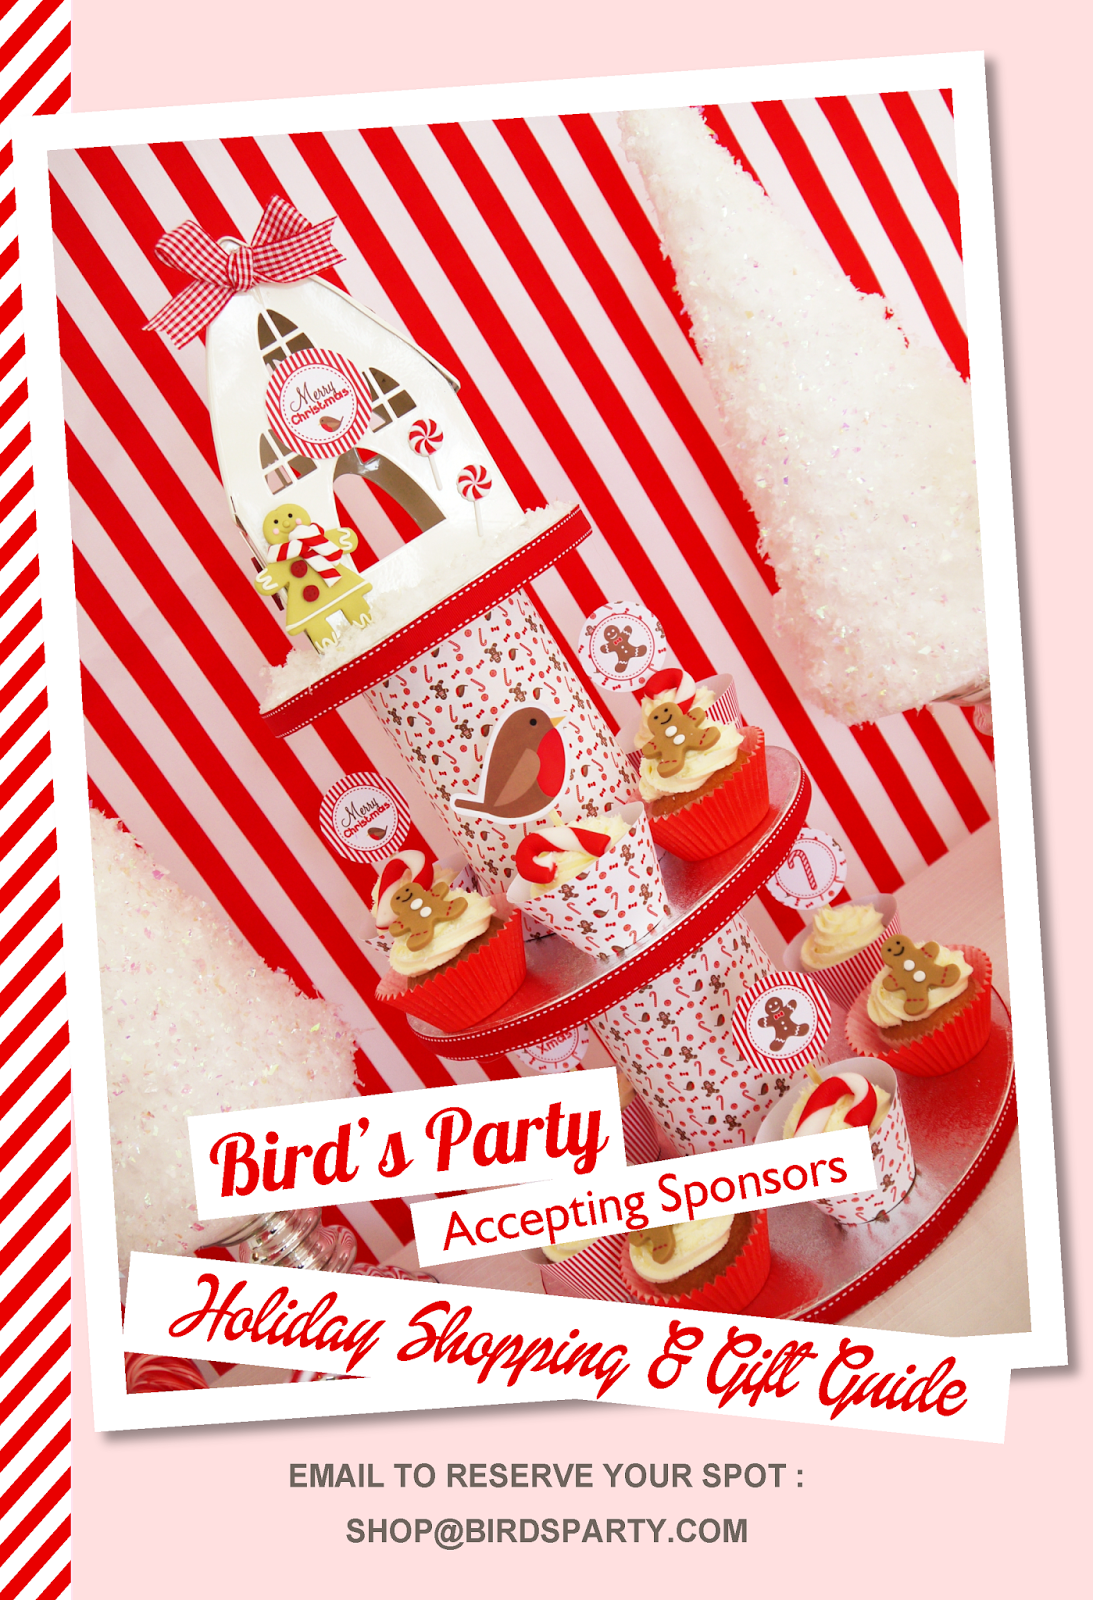 Bird's Party Holiday Gift Guide 2014